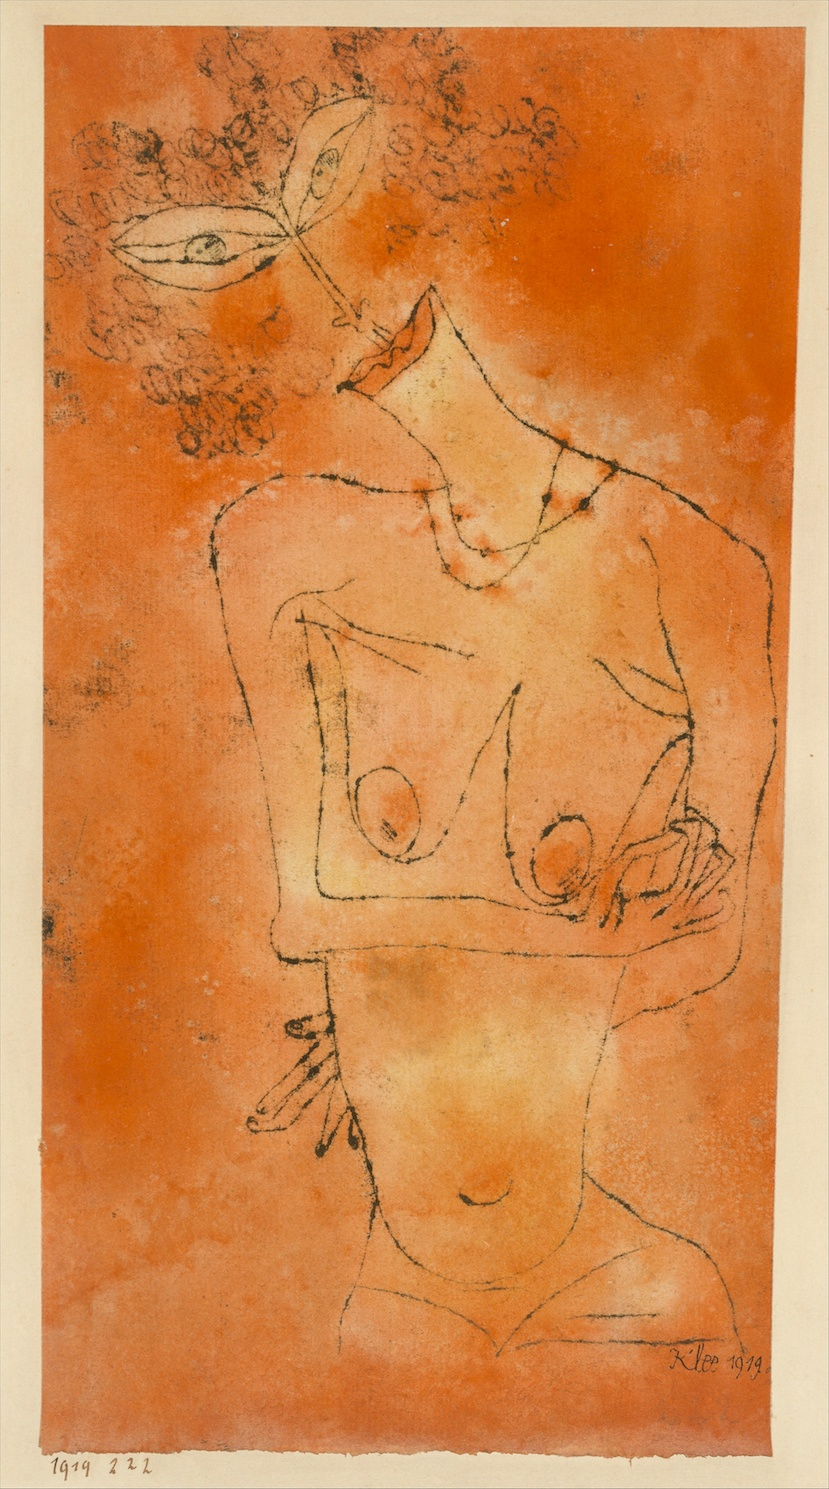 Paul Klee - Lady Inclining Her Head - Watercolor and transferred printing ink on paper mounted on cardboard - 1919